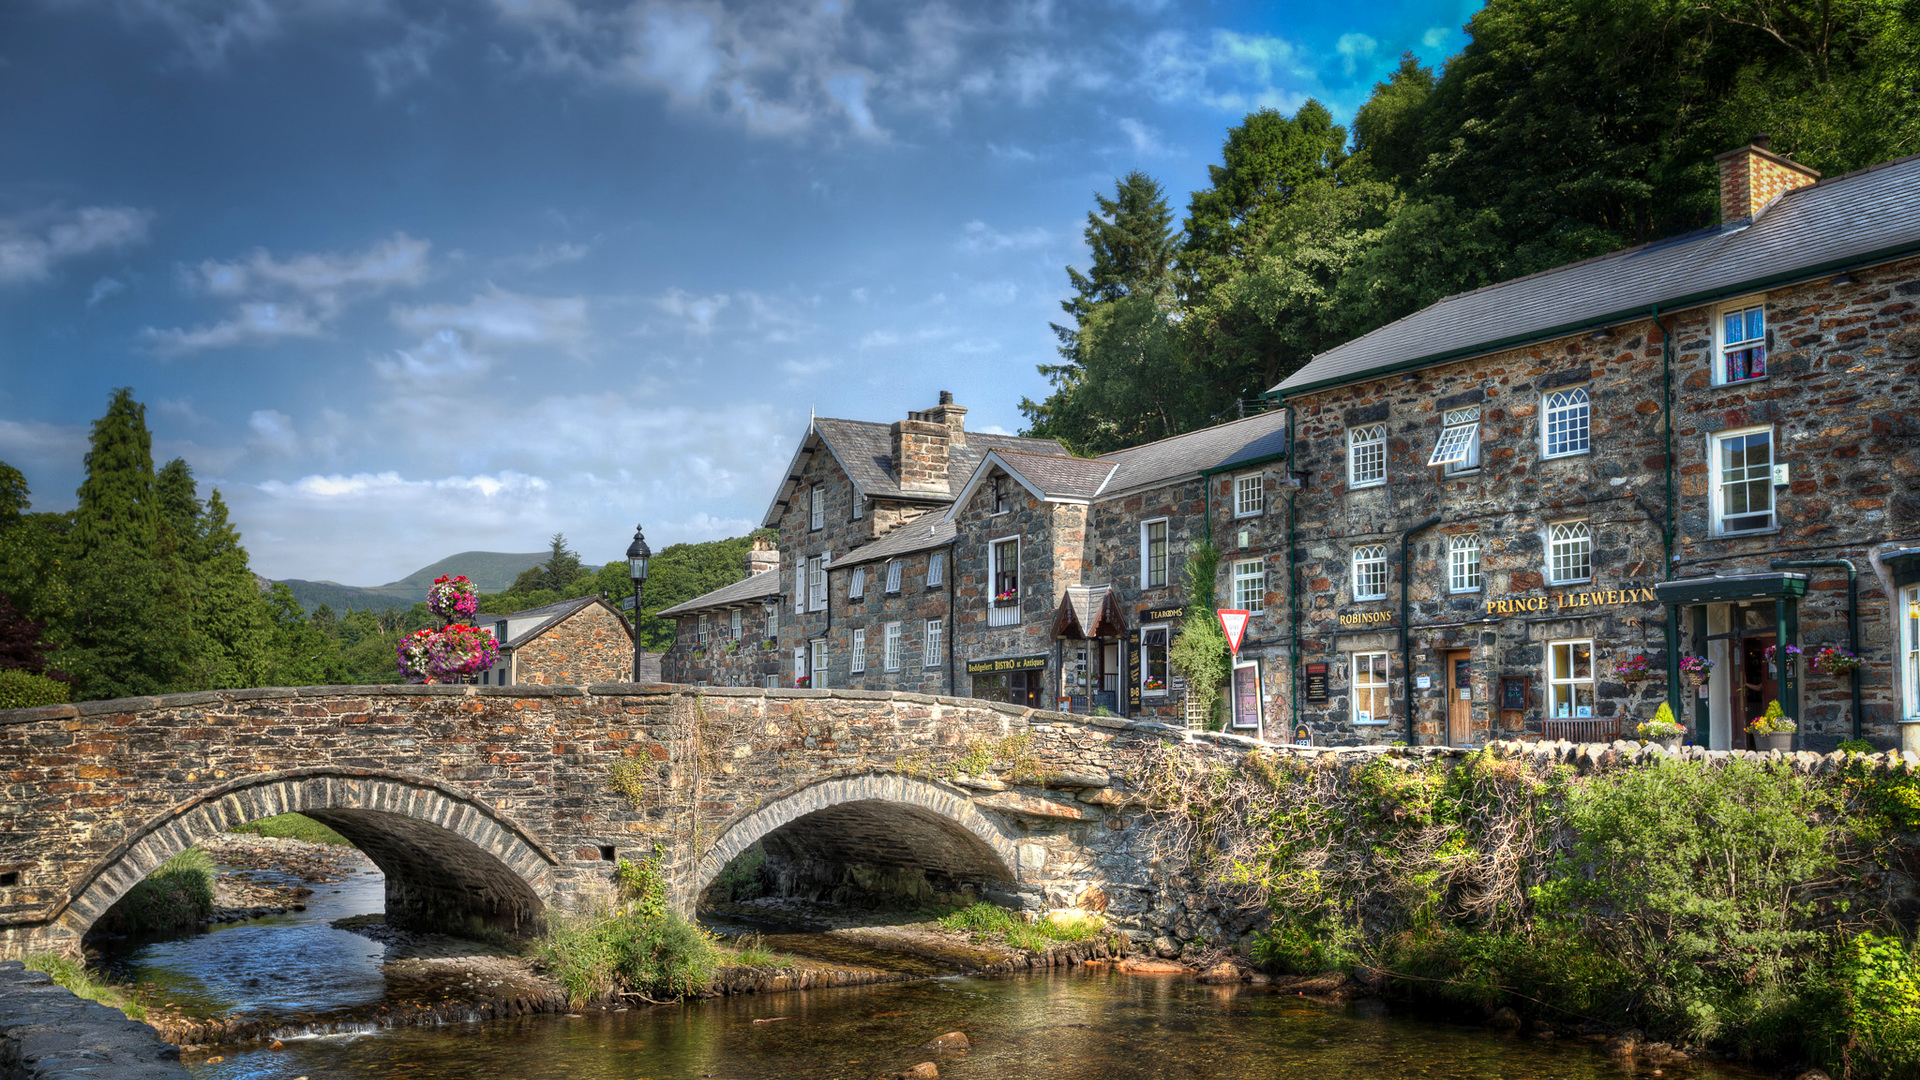 Man Made   Beddgelert Wales Beddgelert Bridge Wallpaper 1920x1080